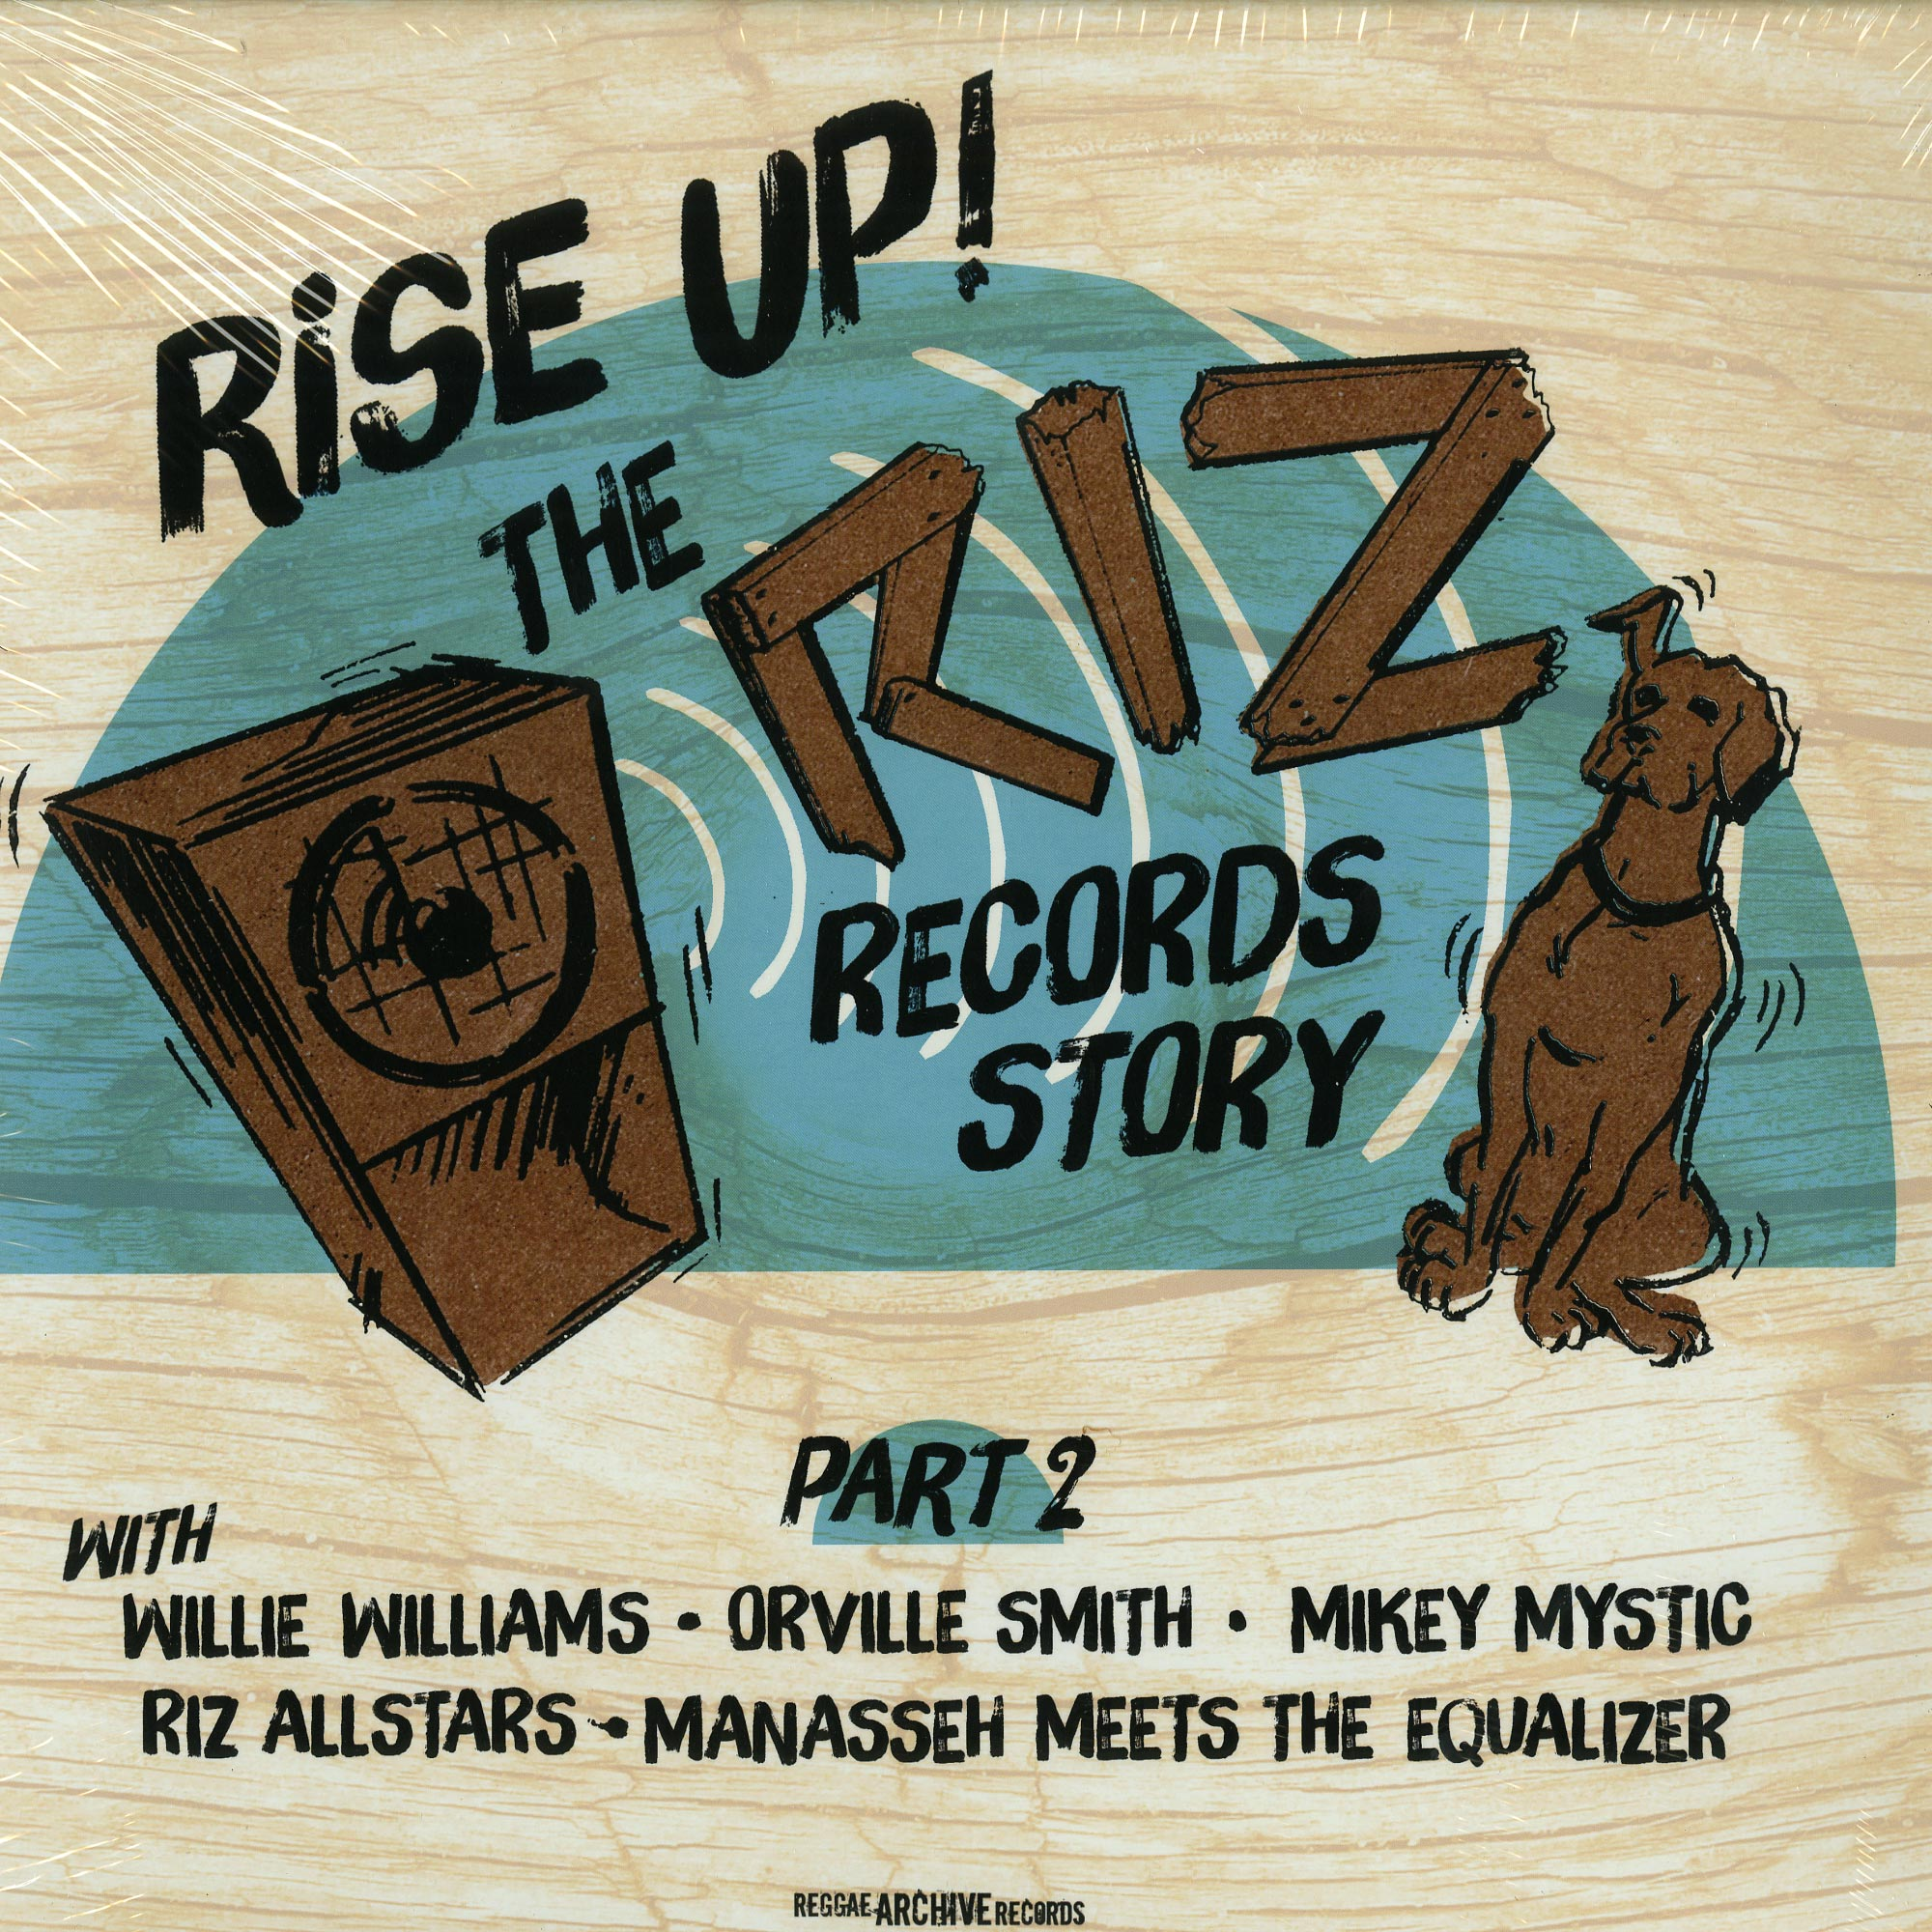 Various Artists - RISE UP - THE RIZ RECORDS STORY PART 2